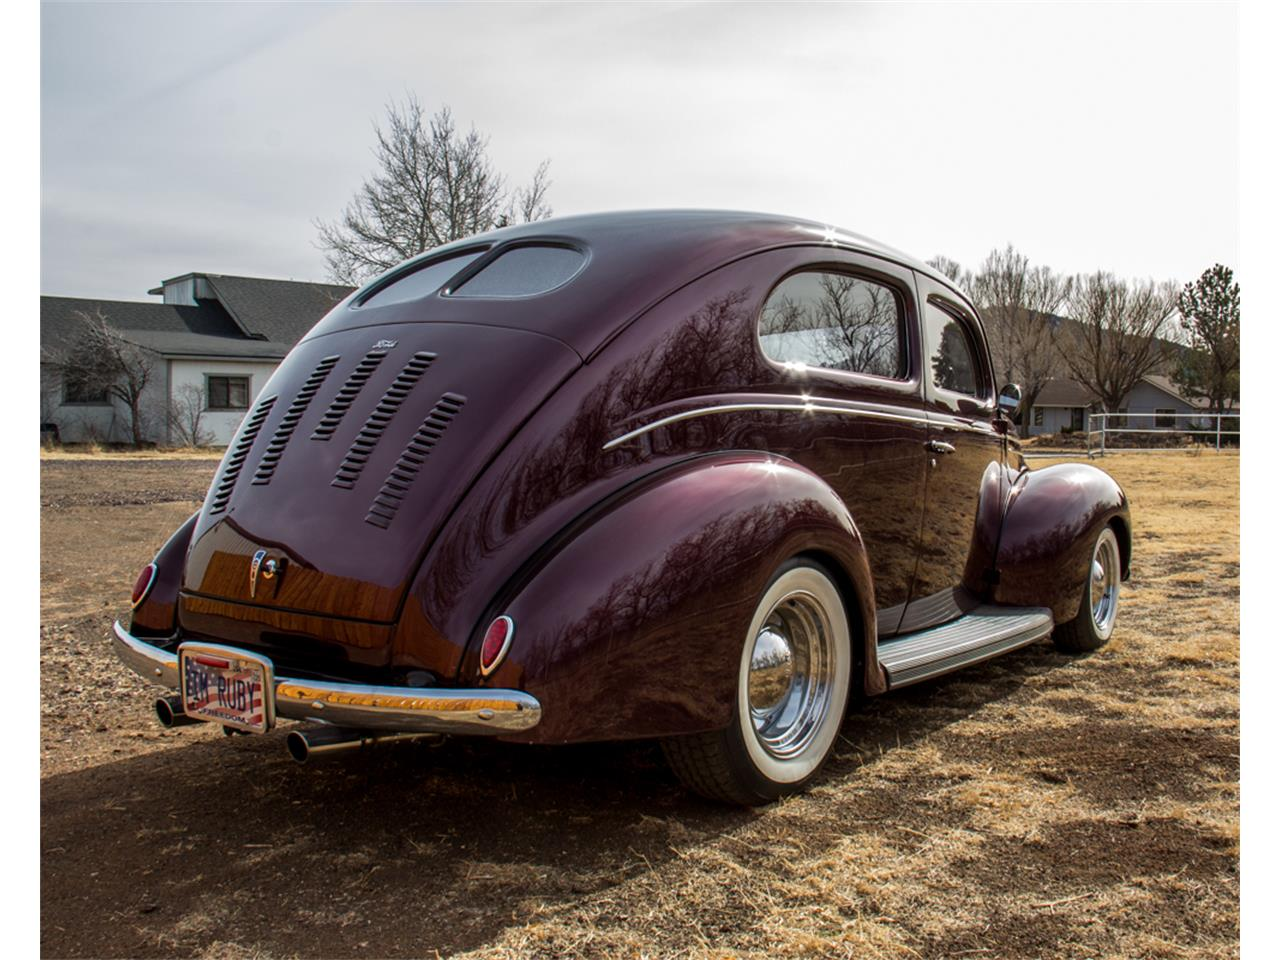 Large Picture of 1939 Ford Tudor located in Scottsdale Arizona Offered by a Private Seller - N561